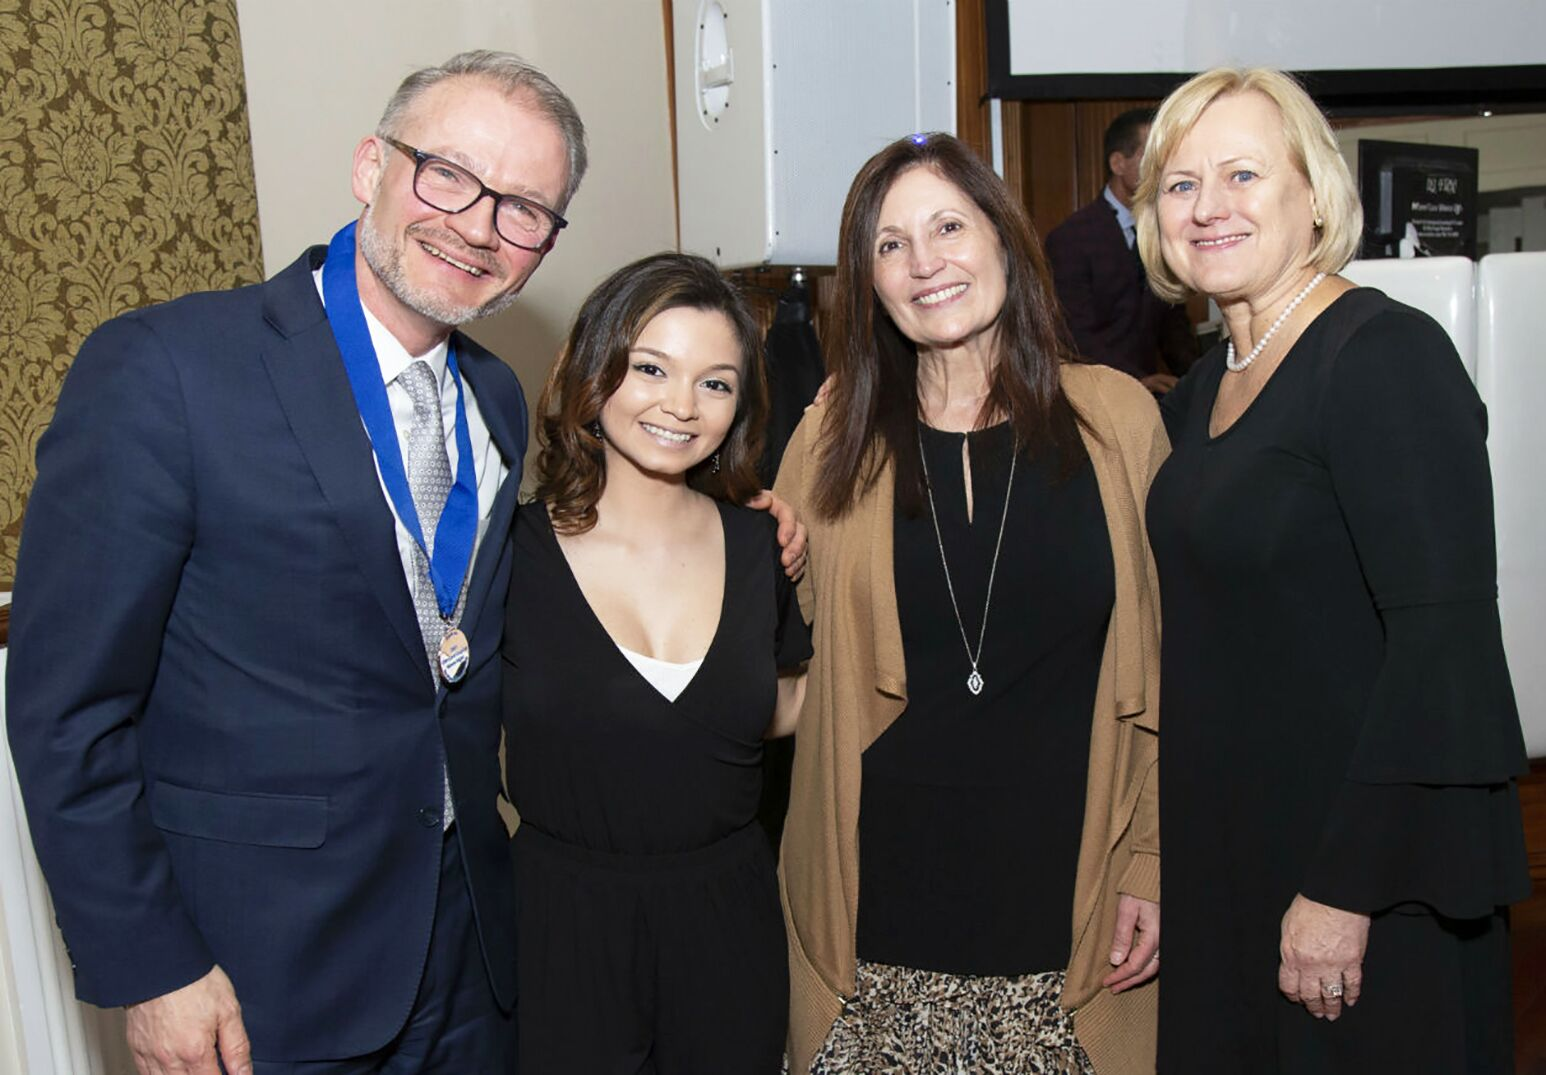 One of Glen Cove Hospital's 2019 Heroes Night patients, Jessica Bohorquez, with Northwell Health's Sven Gierlinger and Glen Cove Hospital's Susan Kwiatek, DNP, and Doreen O'Grady, RN.